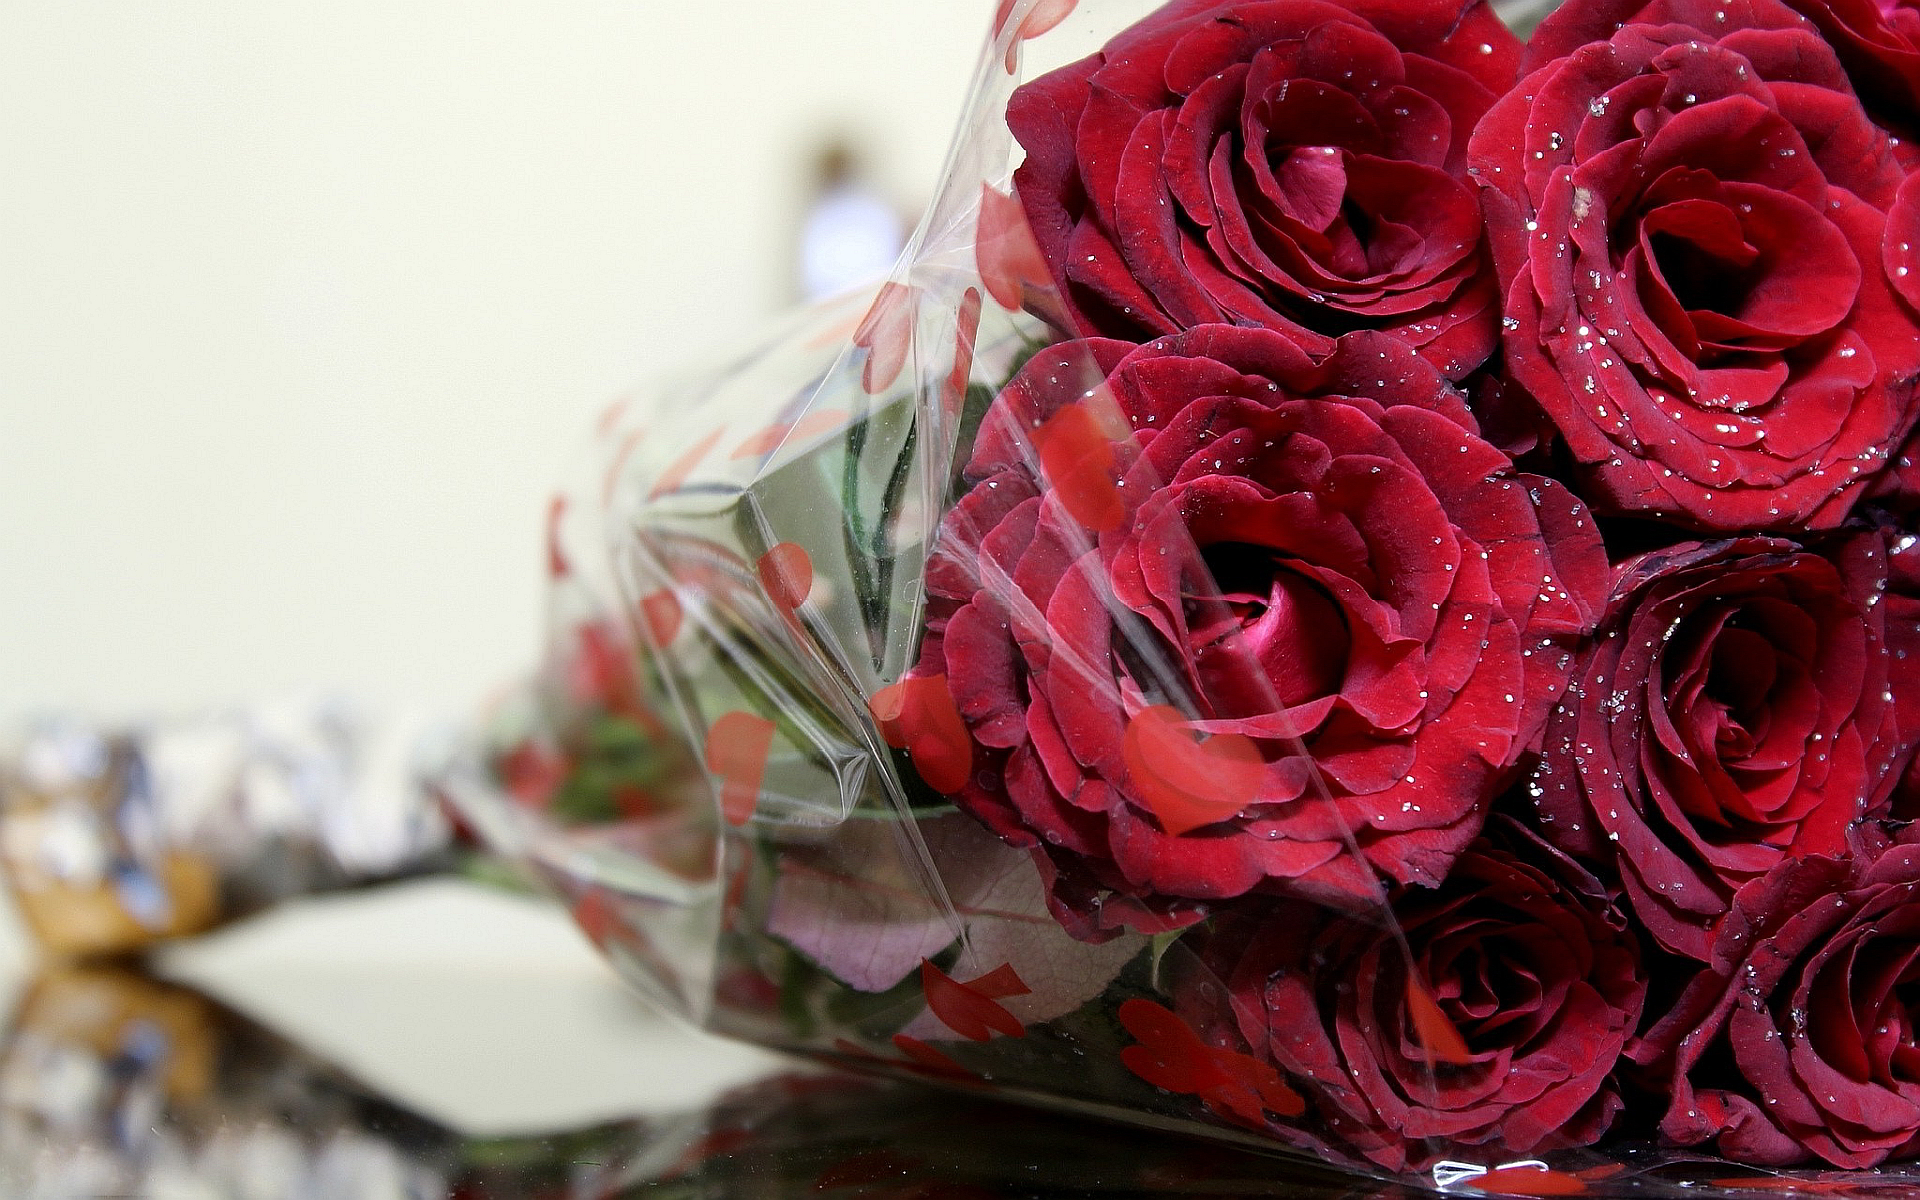 Love Picture, Romantic Wallpaper - Romantic Beautiful Bouquet Of Roses - HD Wallpaper